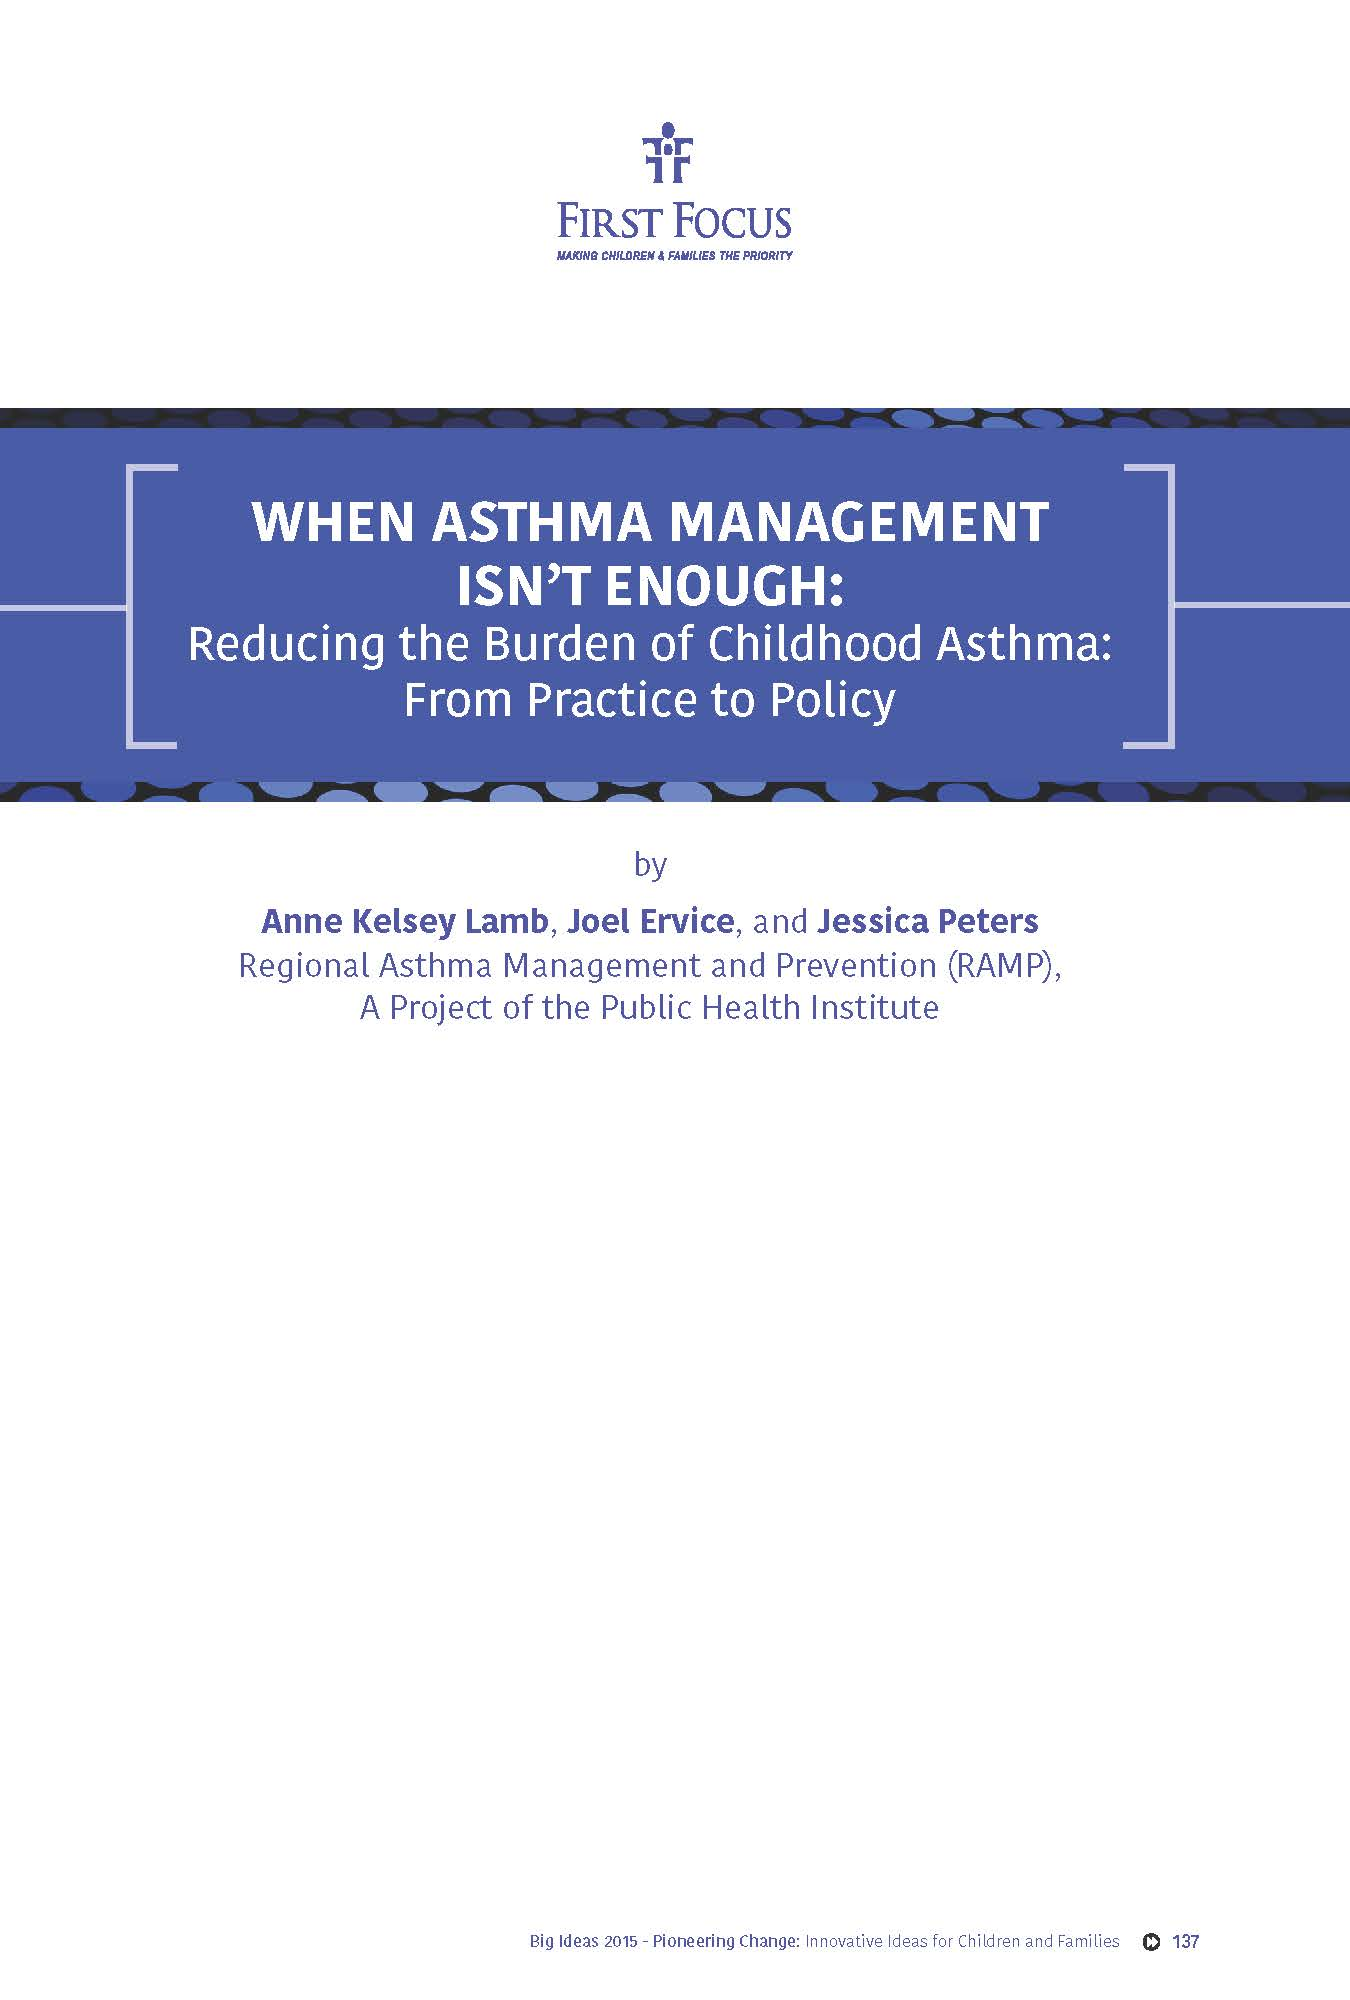 When Asthma Management Isn't Enough_Page_01